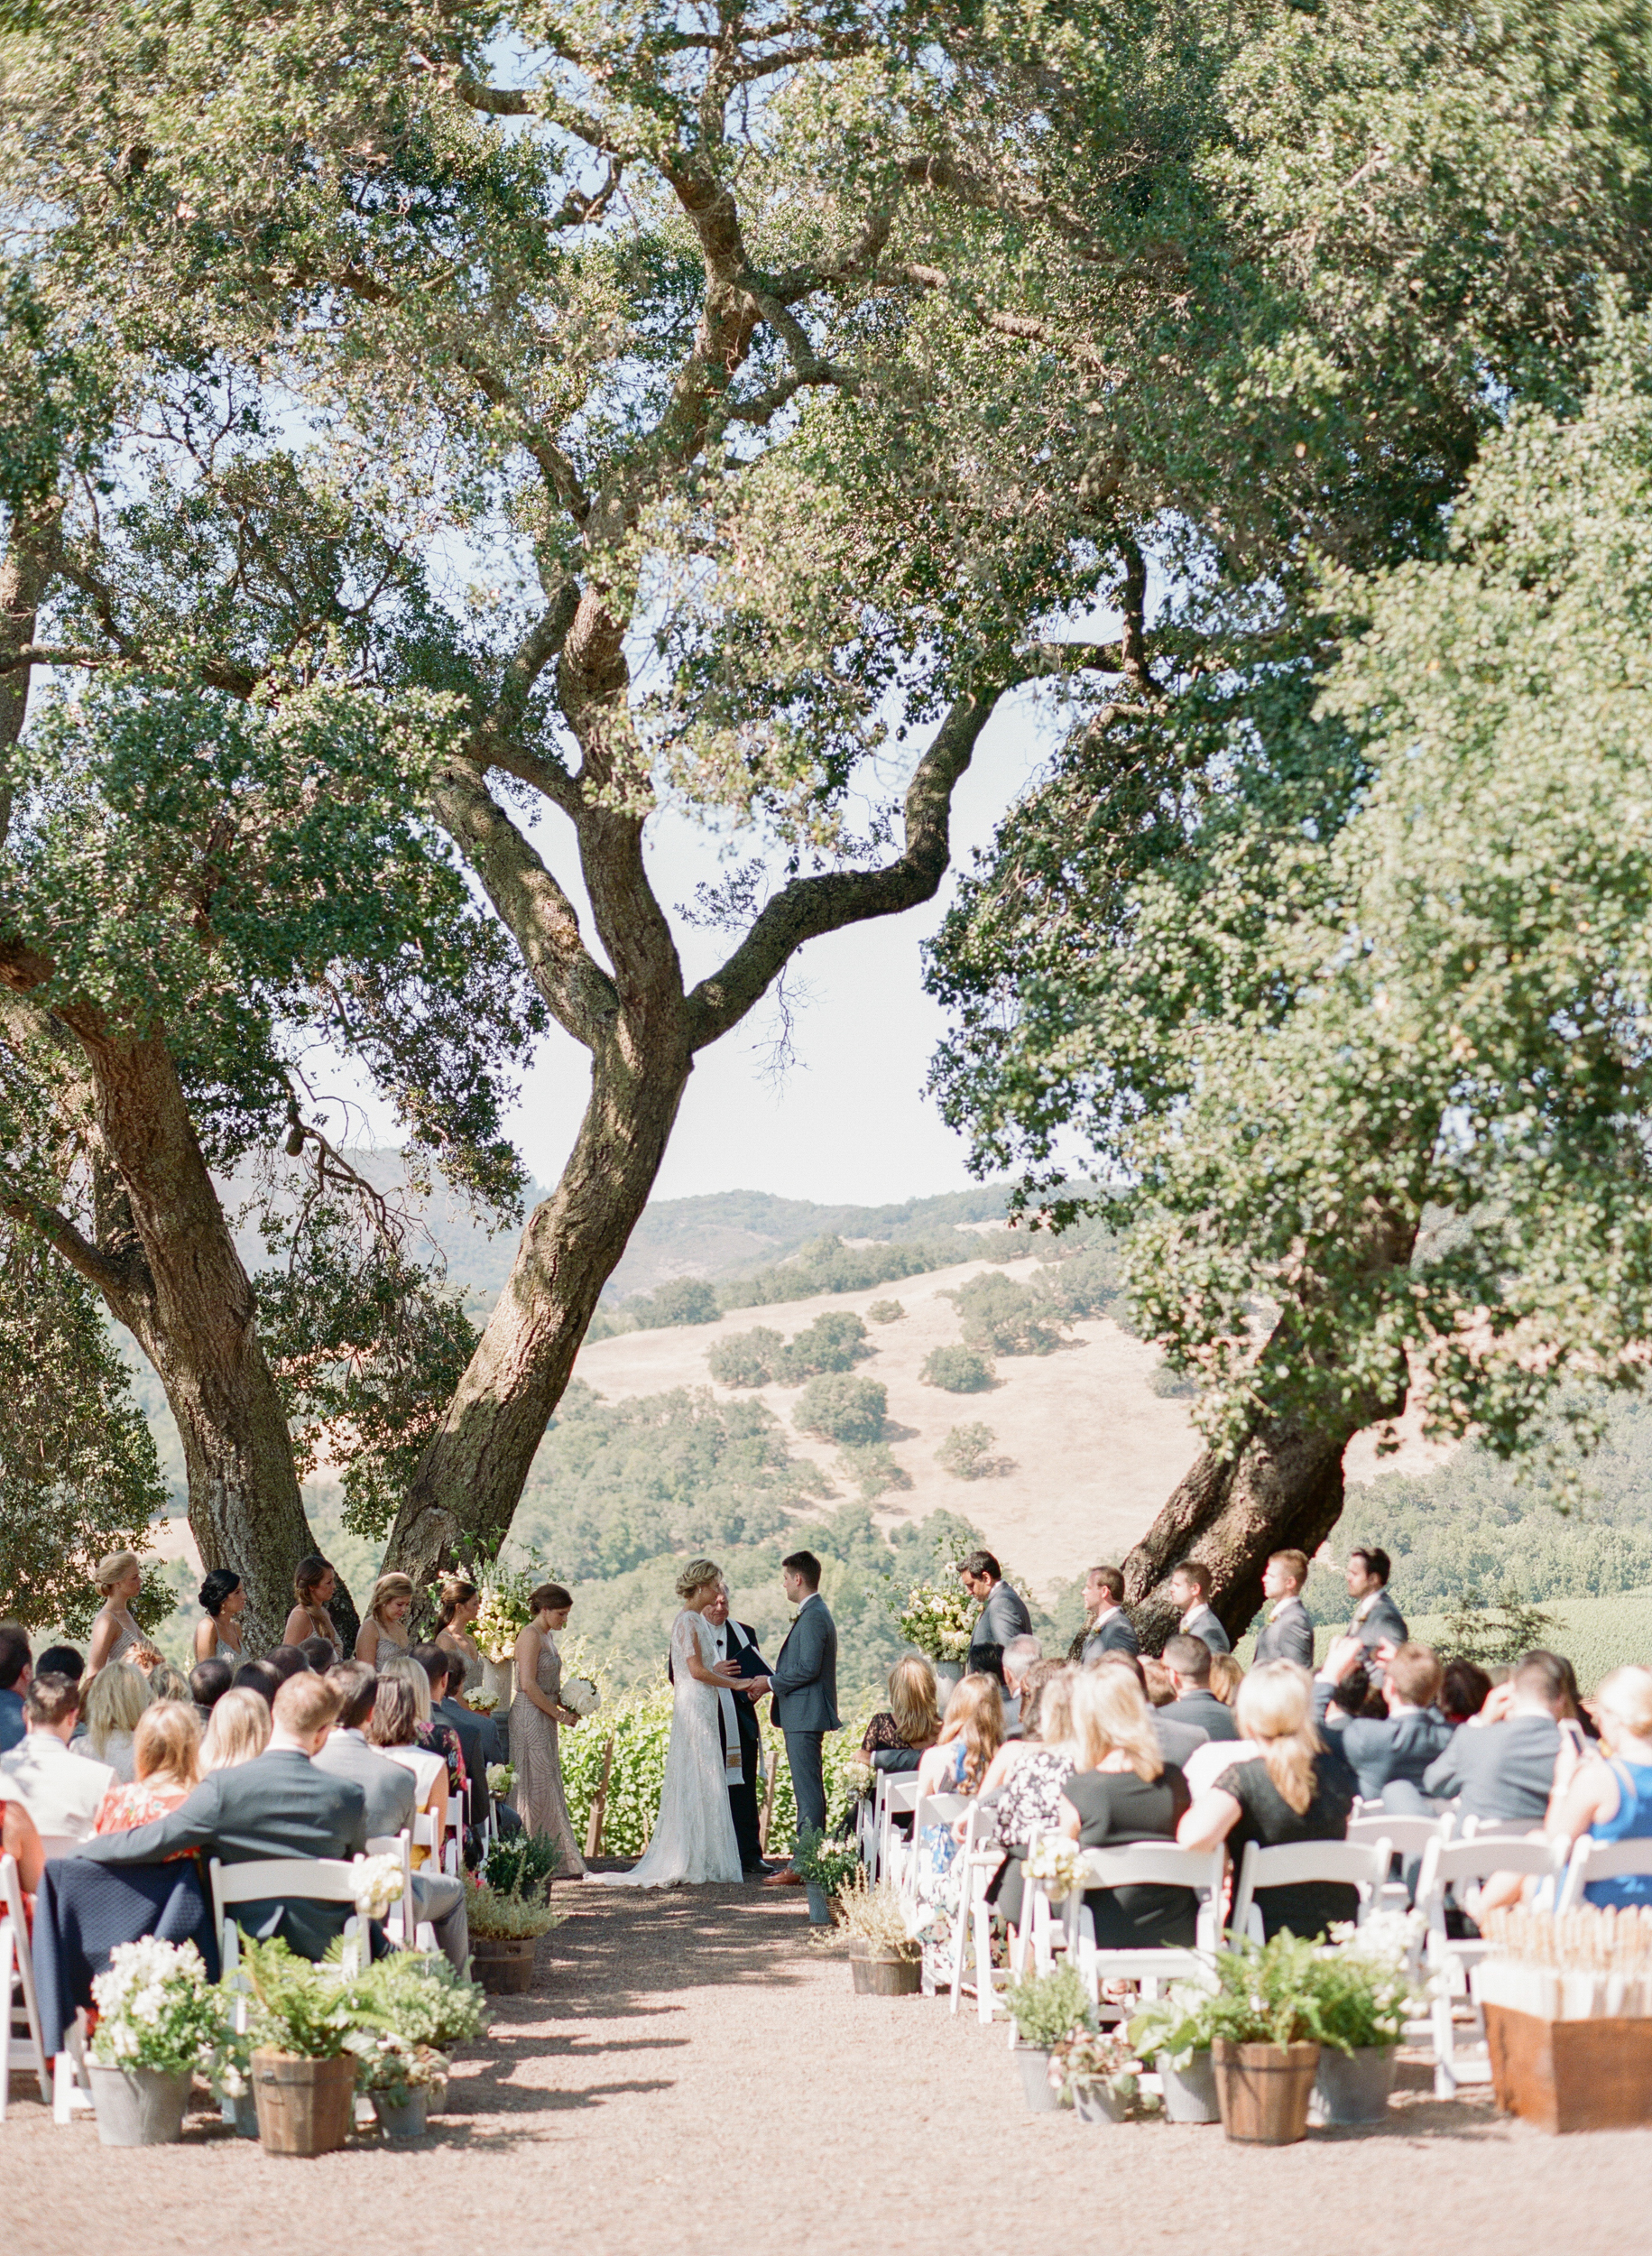 The bride and groom exchange vows under two enormous oaks at the Kunde Estate in Napa; photo by Sylvie Gil